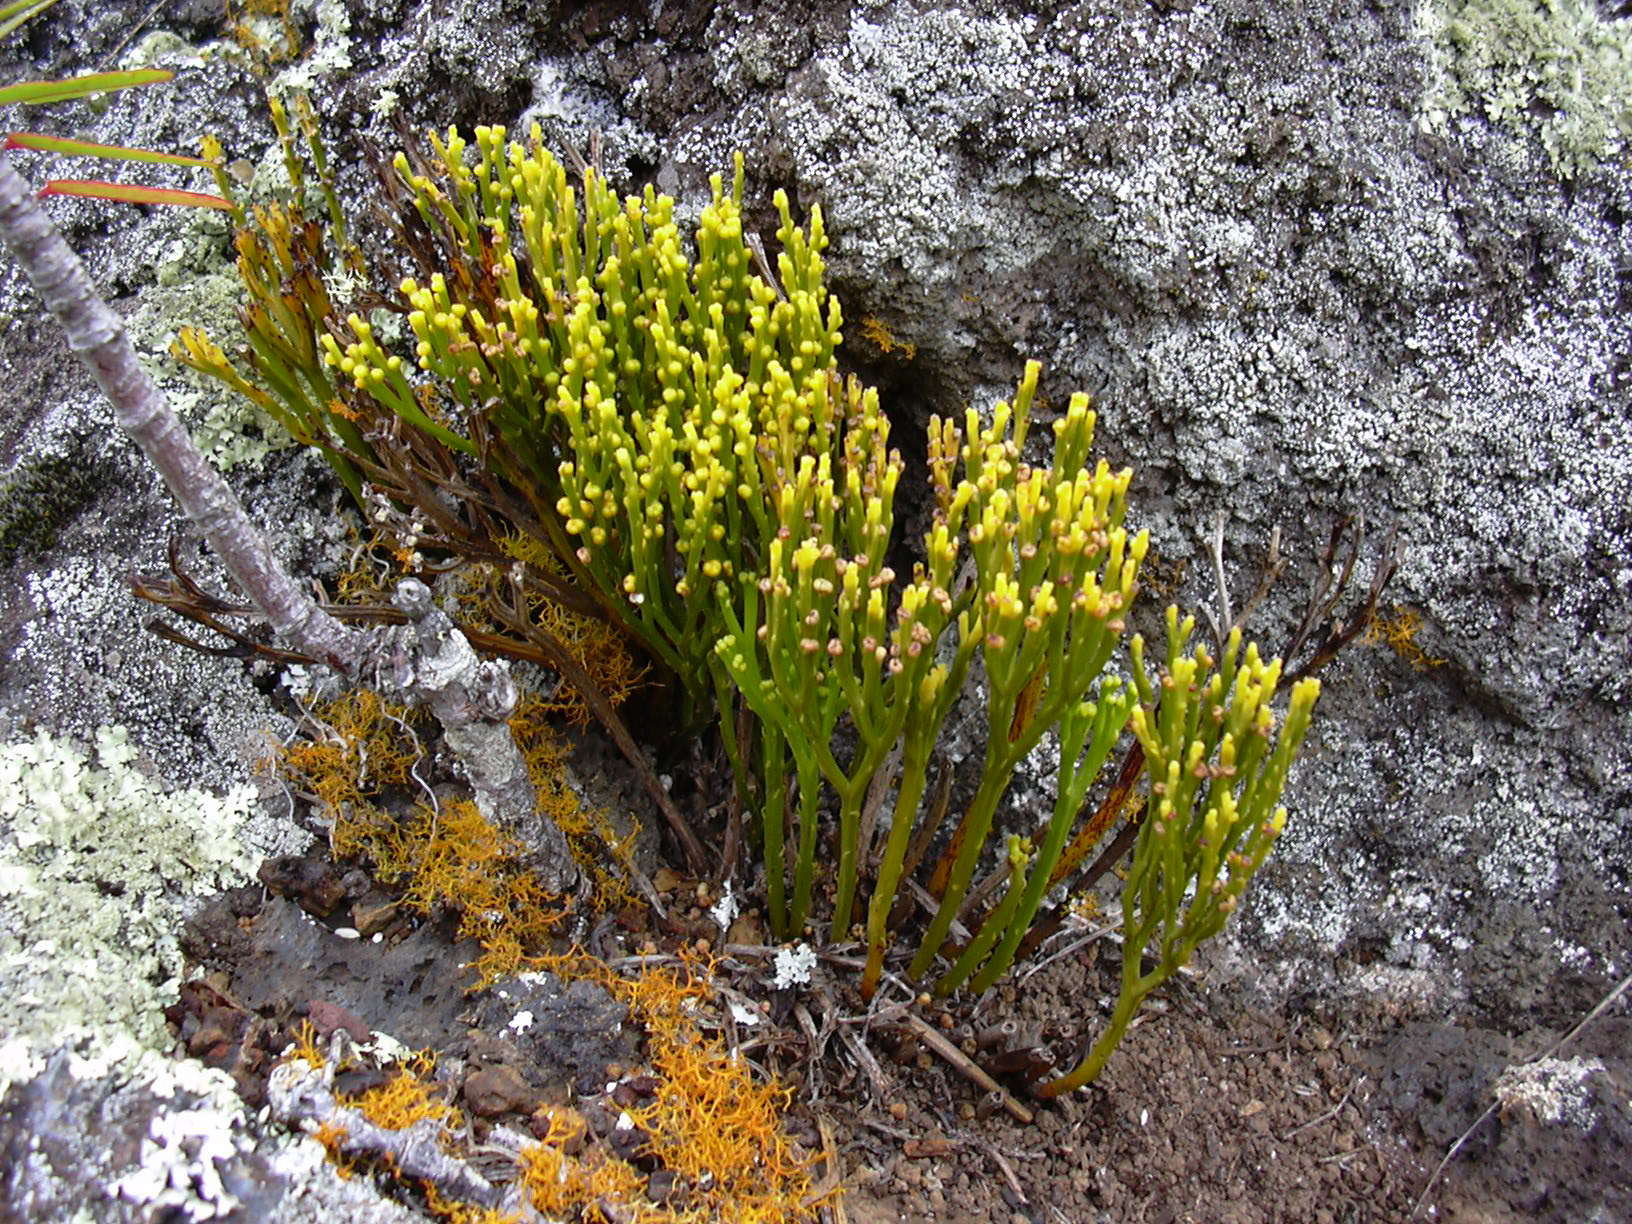 https://upload.wikimedia.org/wikipedia/commons/0/0b/Starr_030628-0095_Psilotum_nudum.jpg